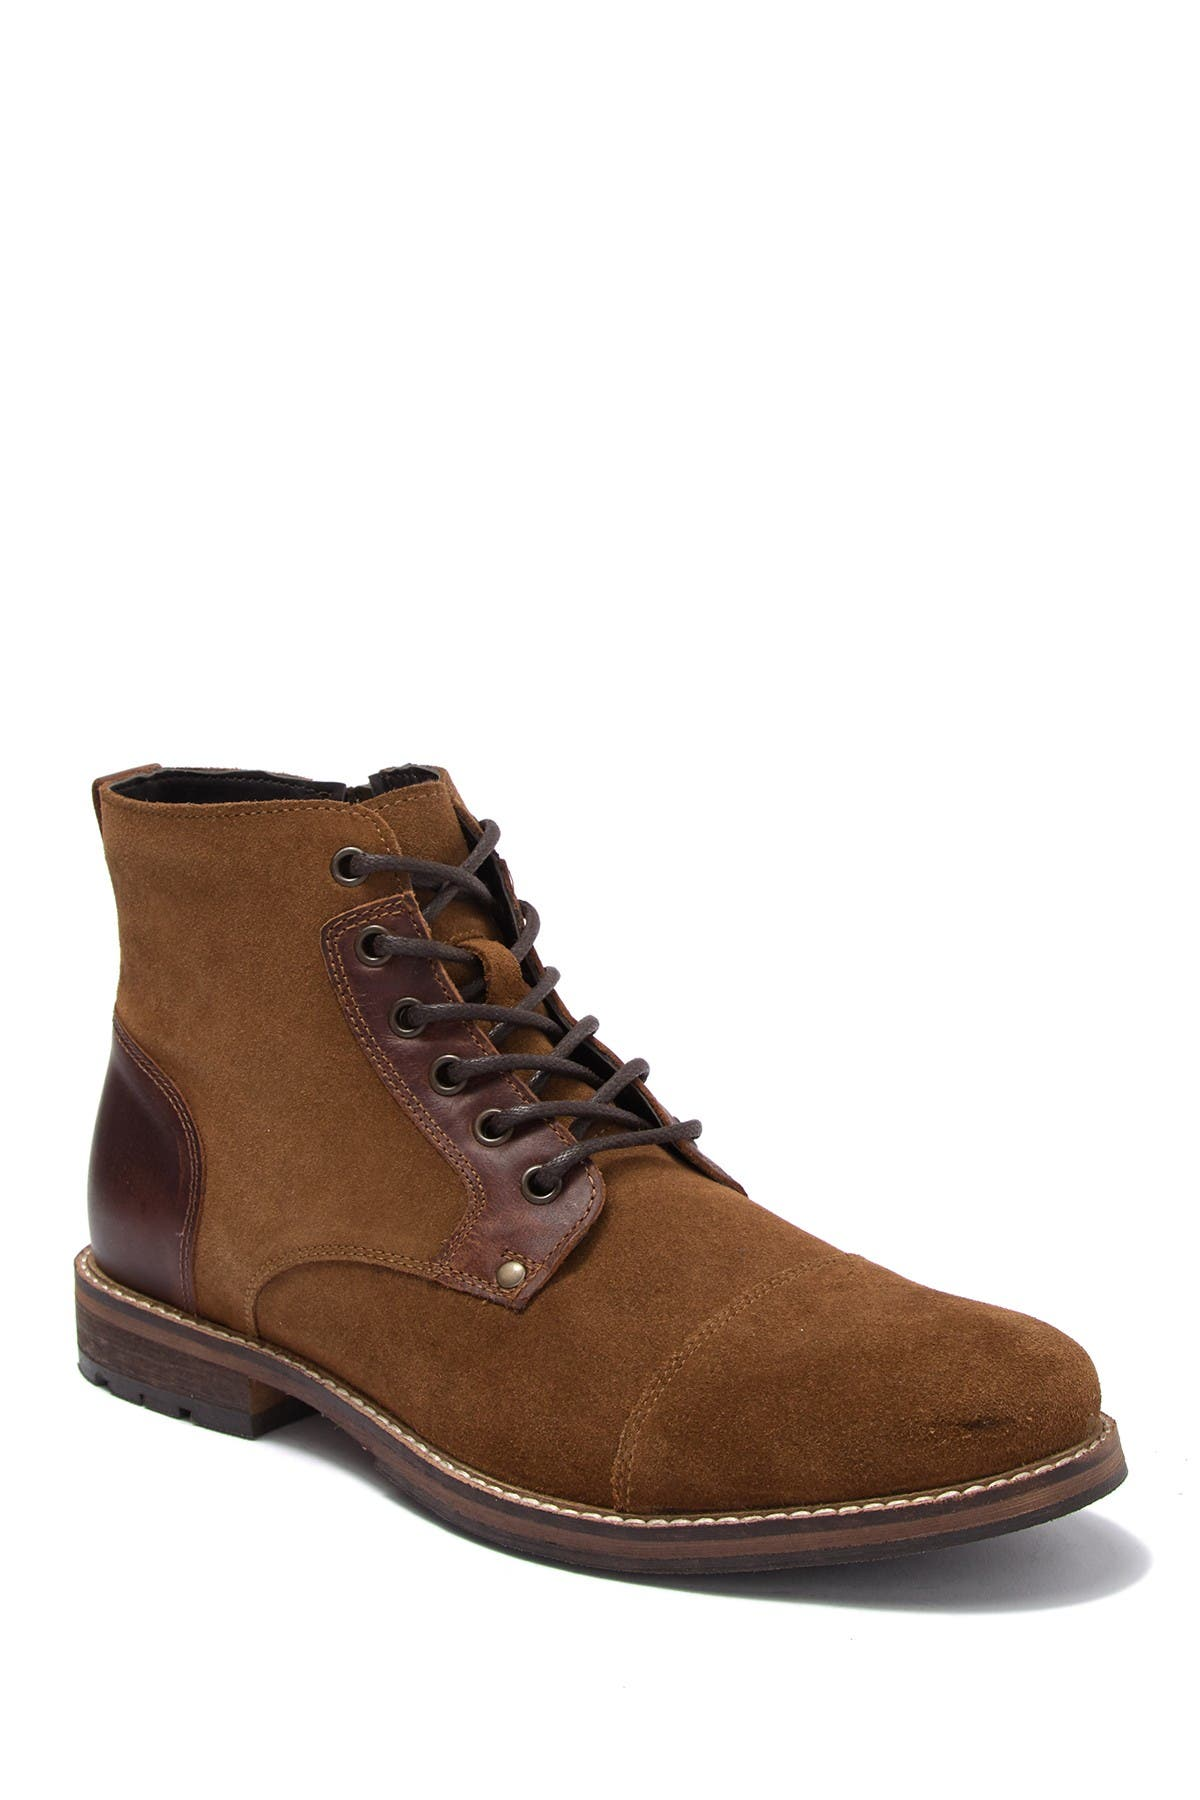 Image of Crevo Neal Suede Boot